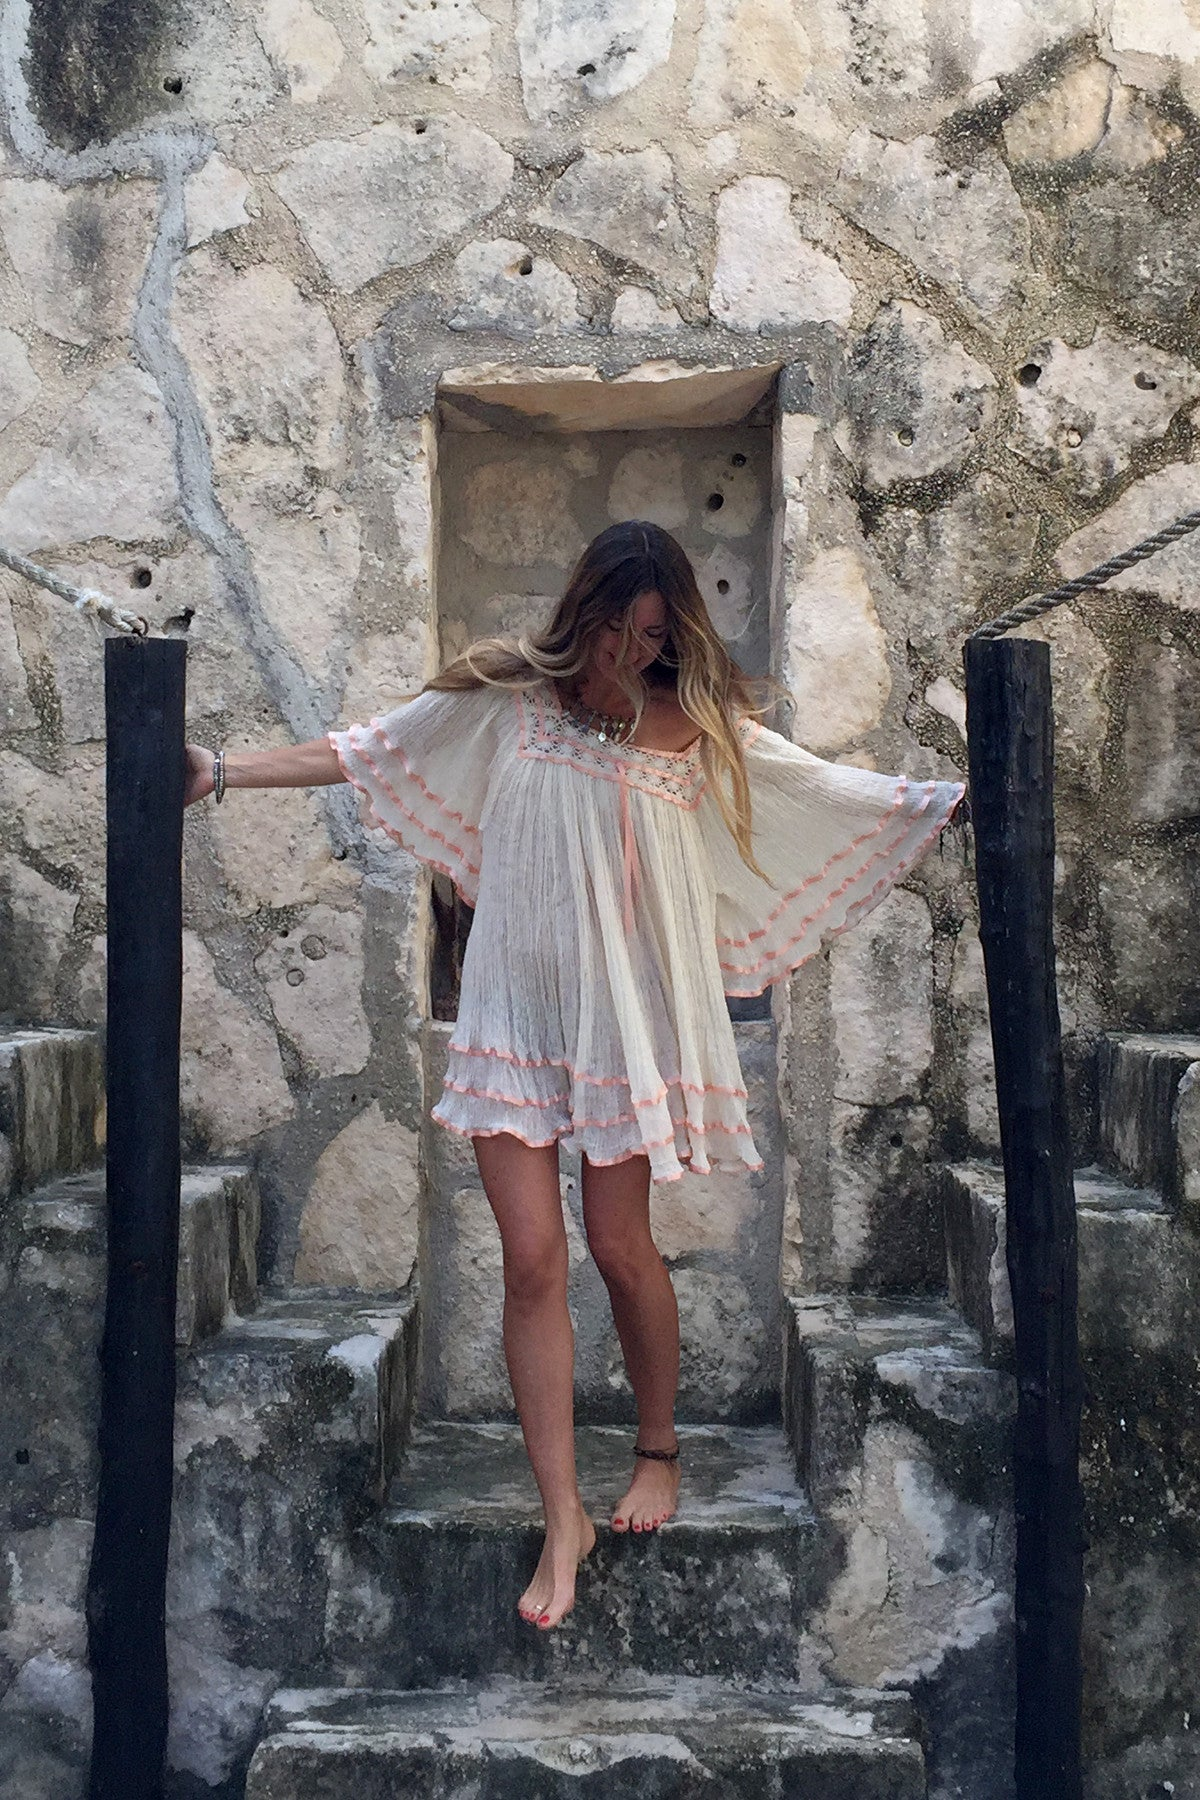 https://cdn.shopify.com/s/files/1/0075/7652/products/jens-pirate-booty-contrast-janis-tunic-jen-rossi-tulum-1.jpg